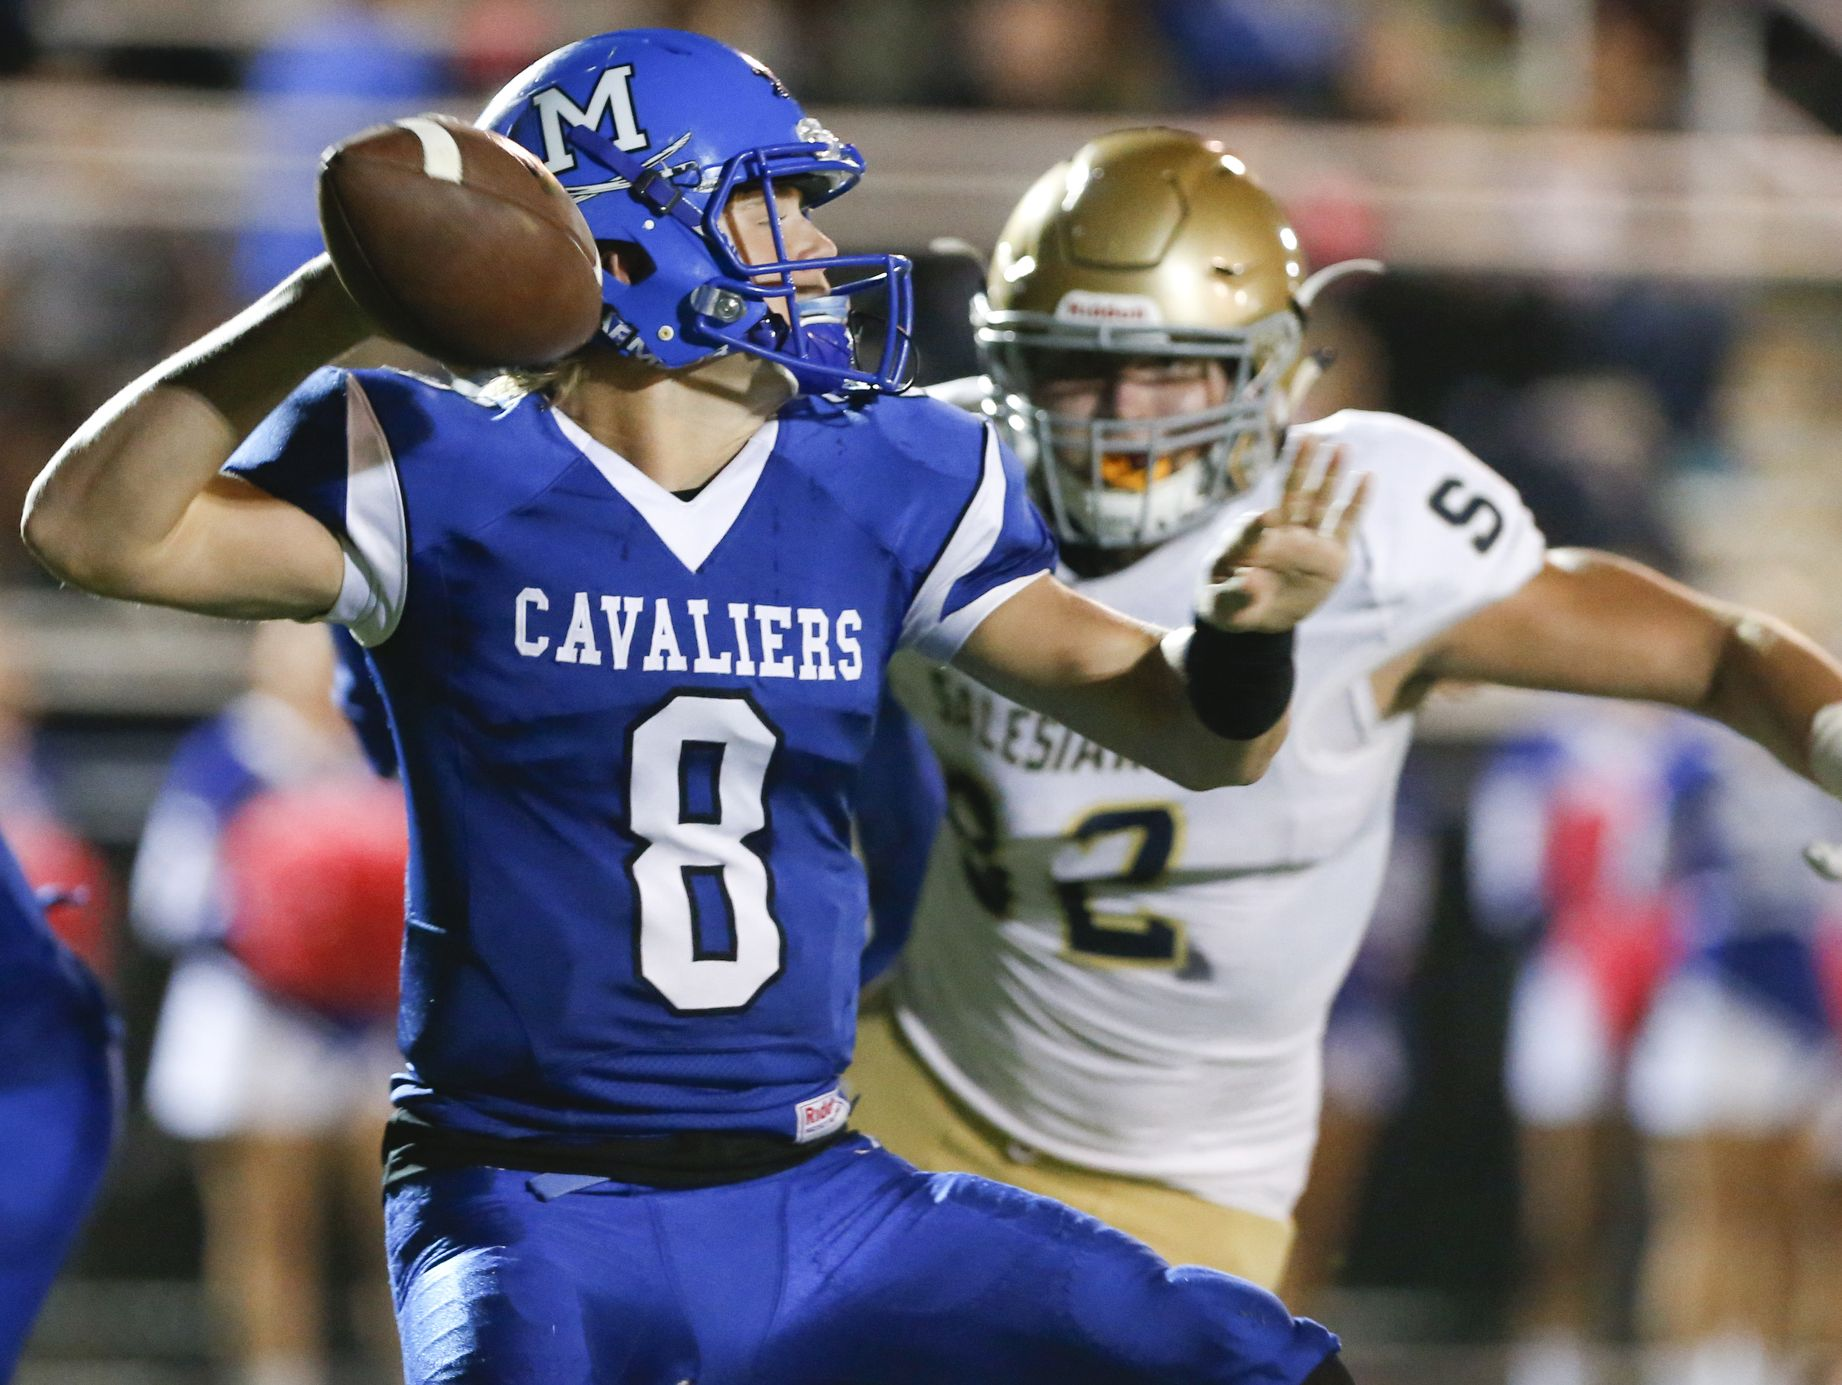 Sophomore Drew Fry has thrown for 2,542 yards and 35 touchdowns in his first year as Middletown's starter.